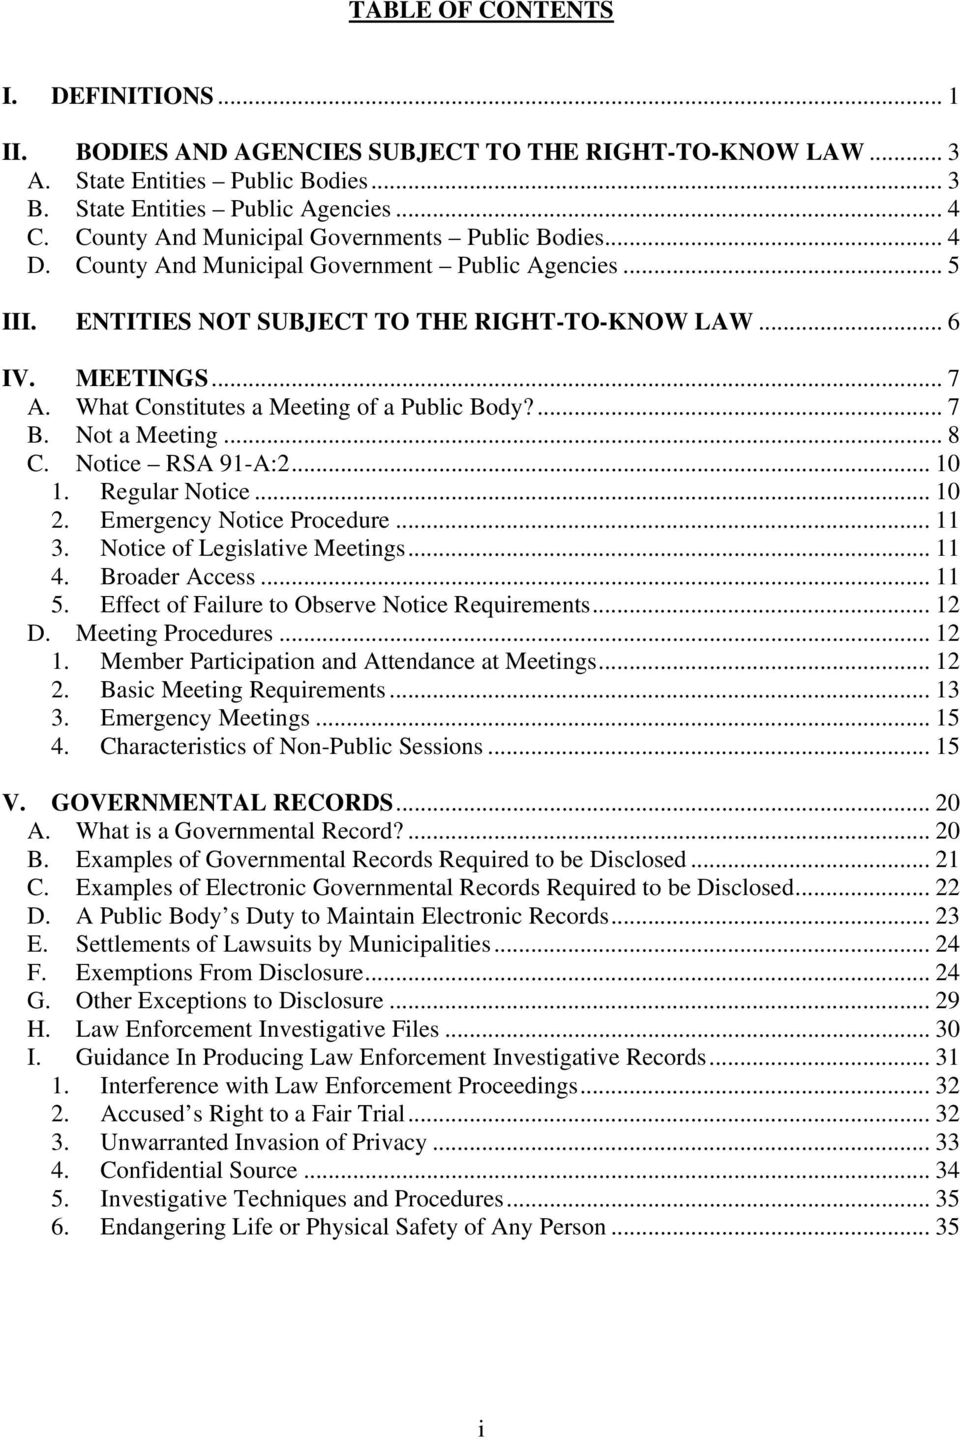 What Constitutes a Meeting of a Public Body?... 7 B. Not a Meeting... 8 C. Notice RSA 91-A:2... 10 1. Regular Notice... 10 2. Emergency Notice Procedure... 11 3. Notice of Legislative Meetings... 11 4.